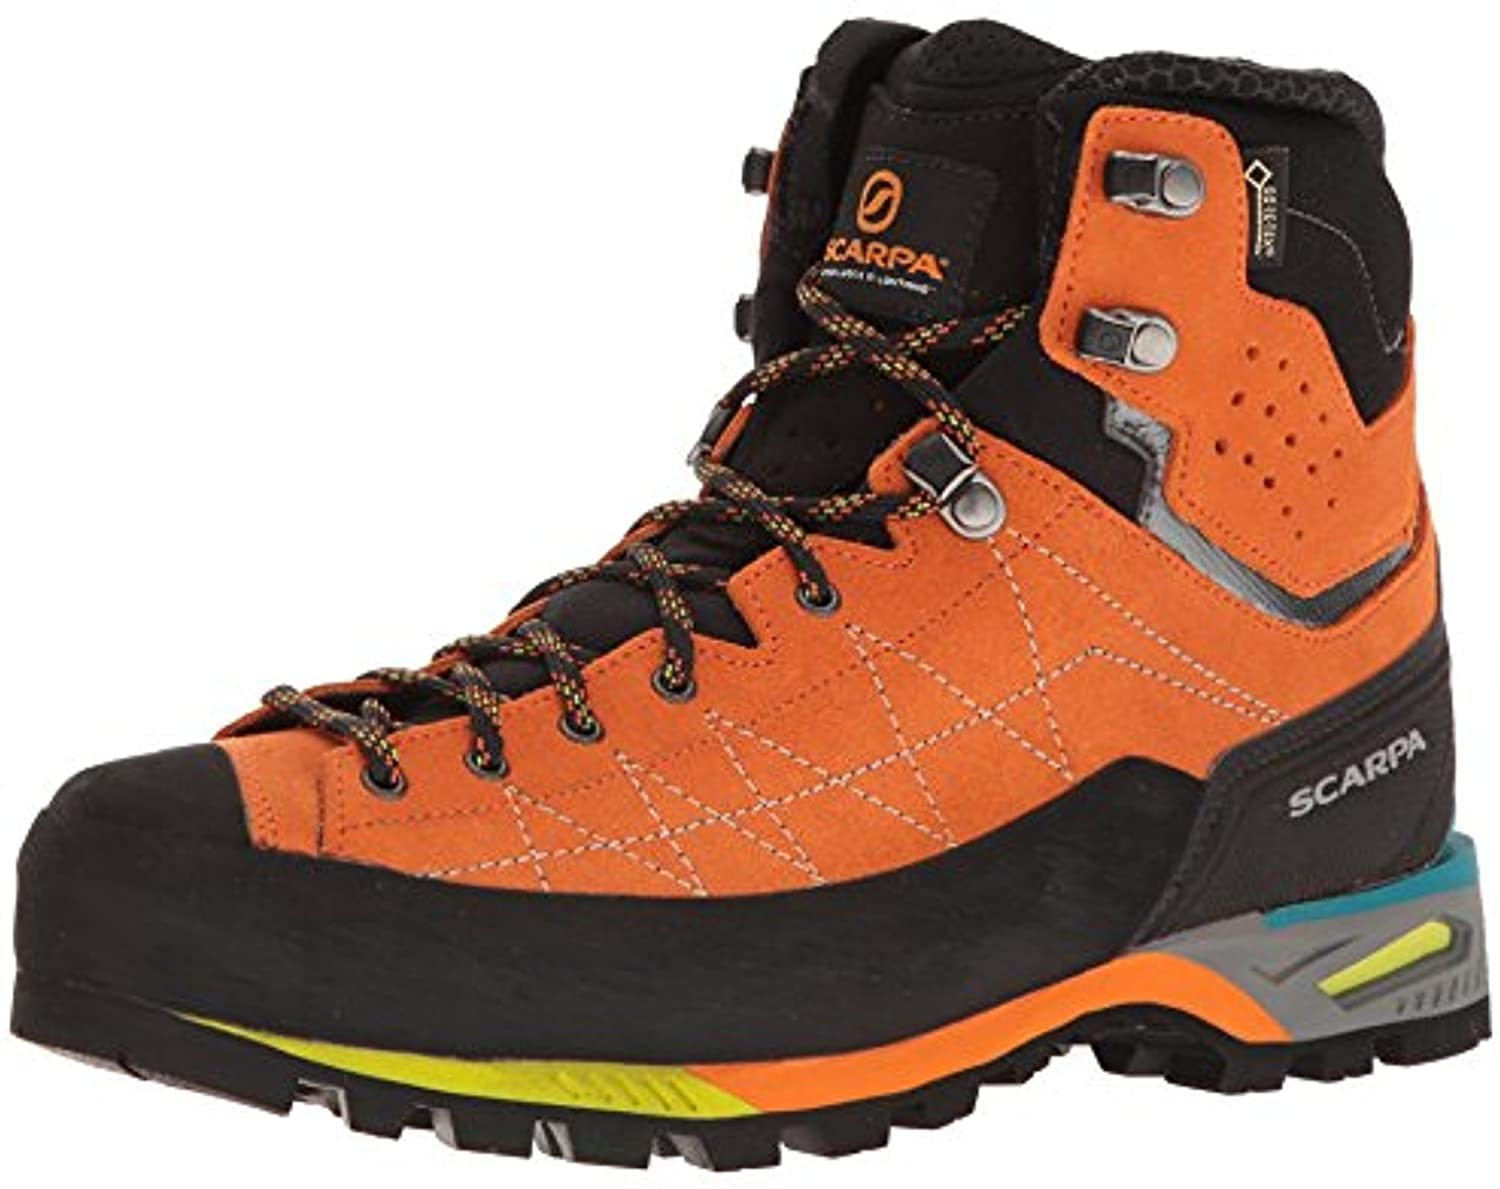 Scarpa Mens Zodiac Tech GTX Hiking Boots & E-Tip Glove Bundle